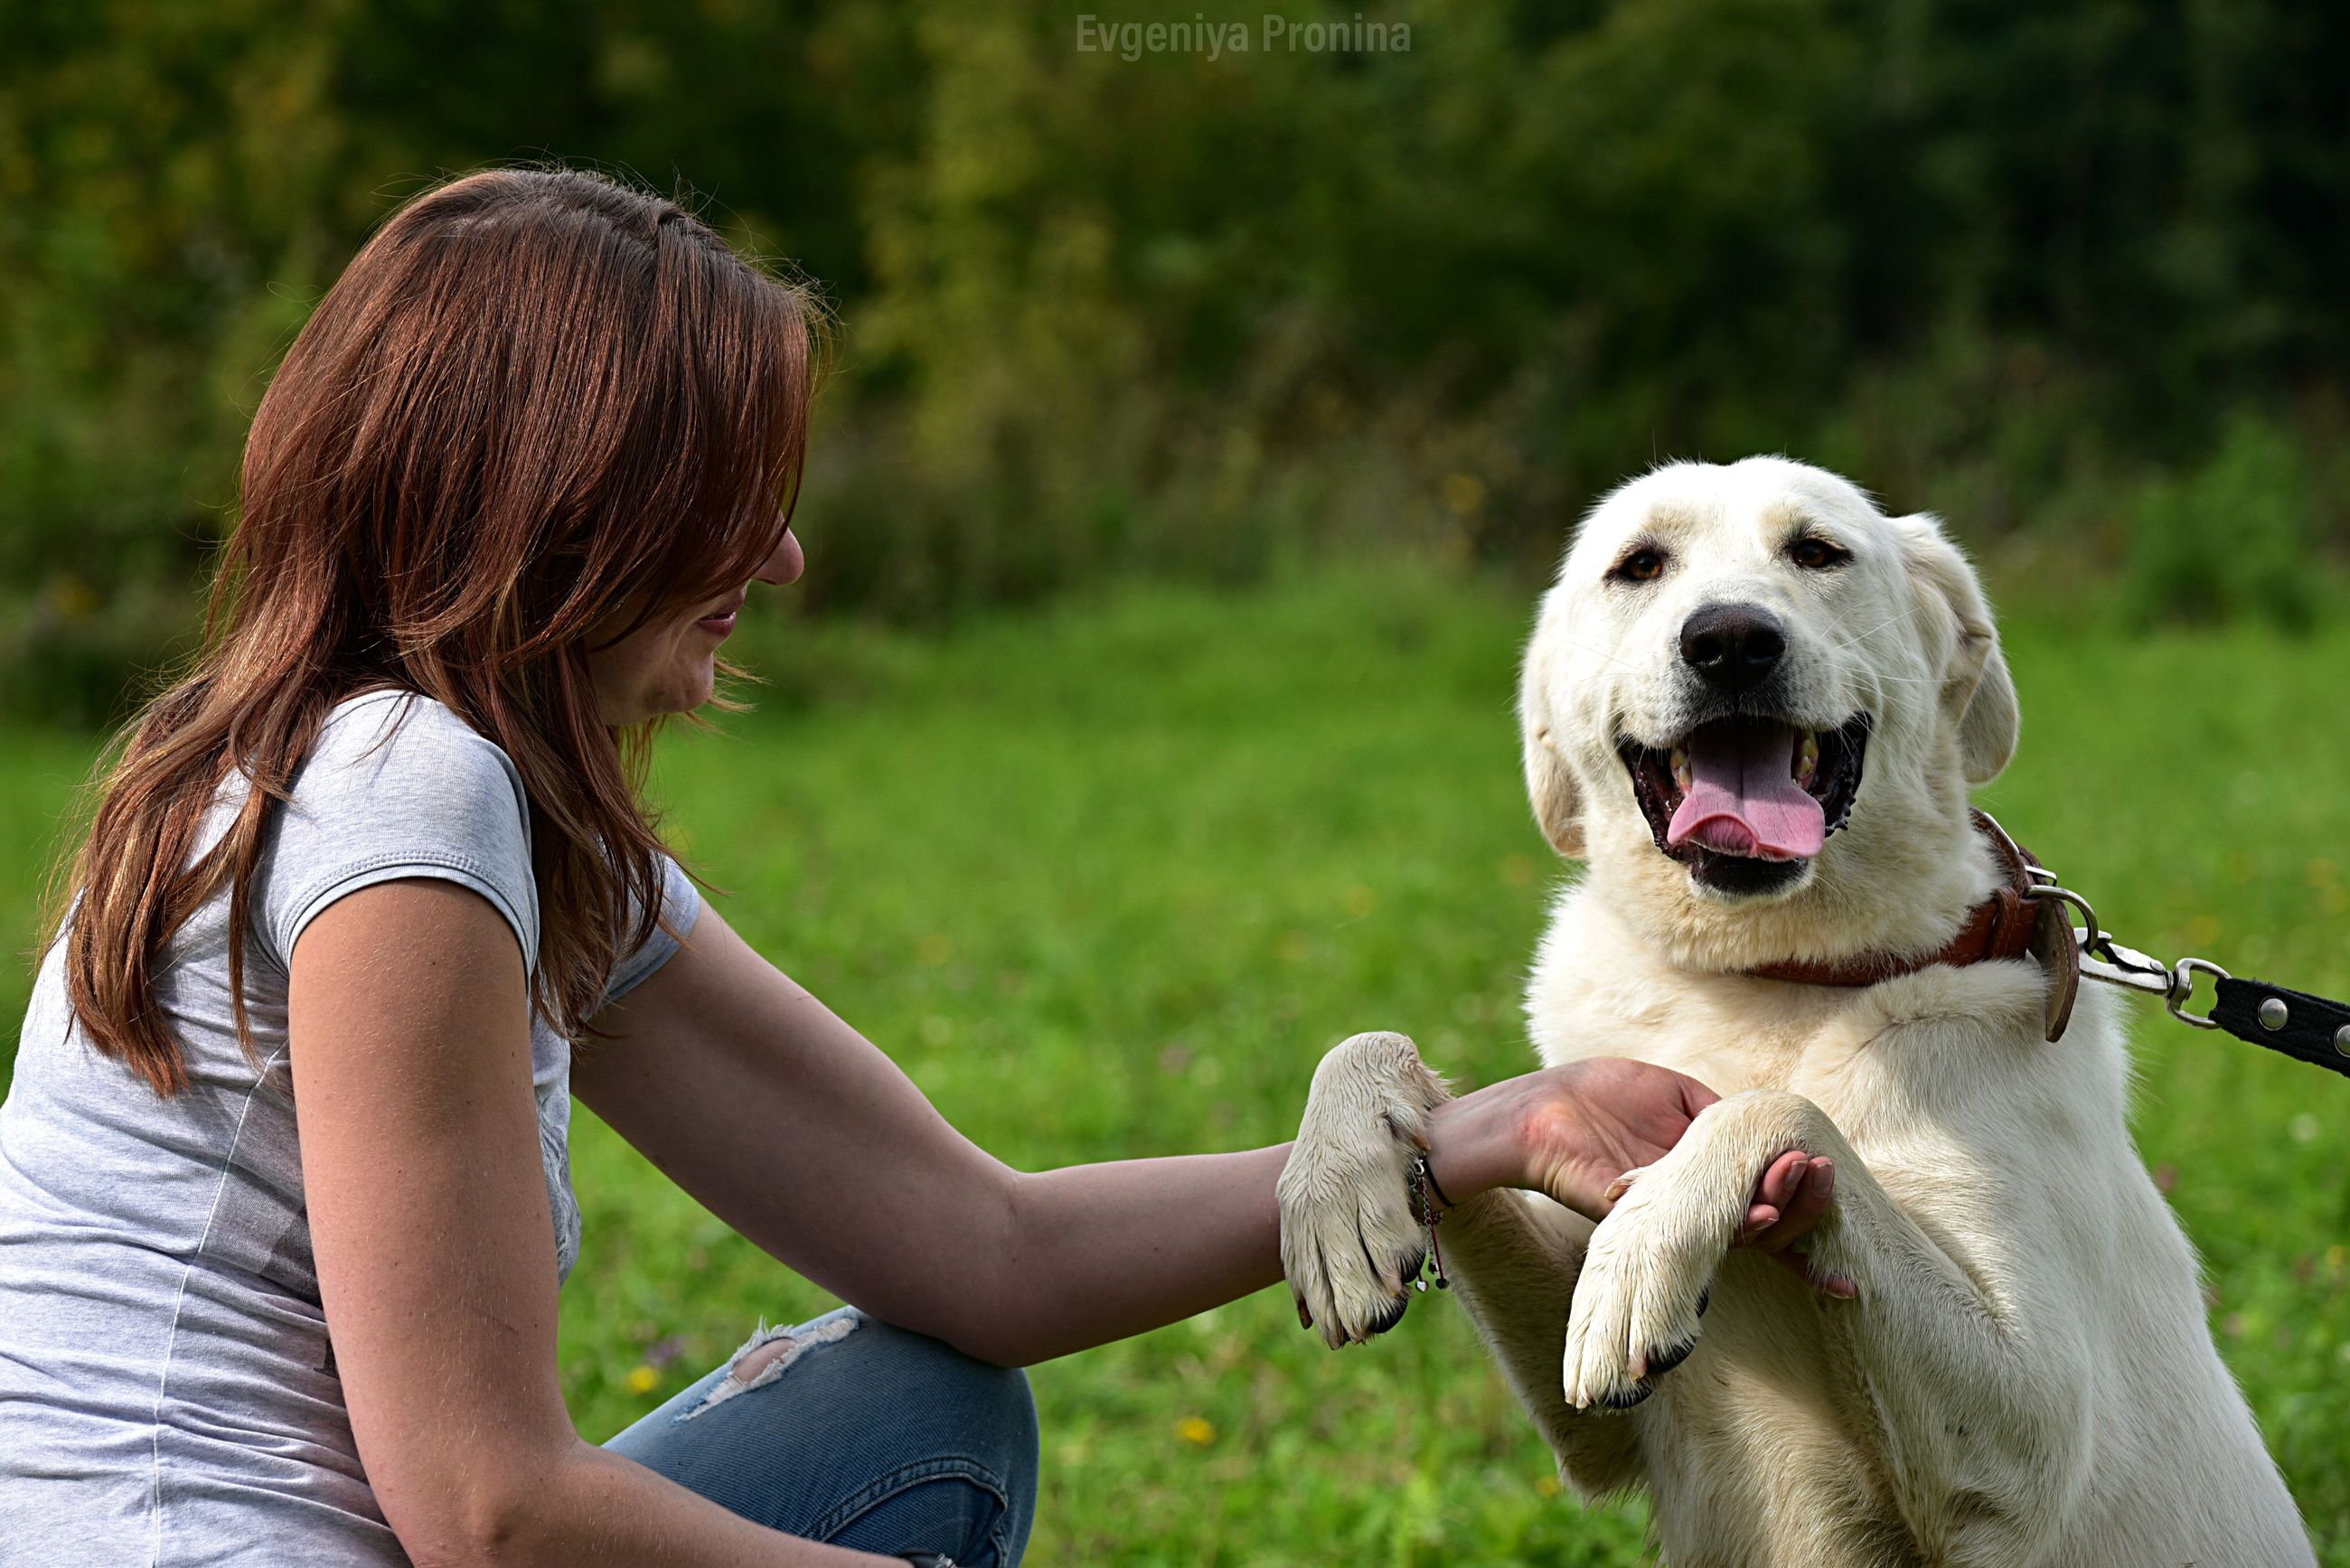 mammal, pets, domestic, domestic animals, one animal, canine, dog, vertebrate, real people, women, one person, three quarter length, sitting, day, casual clothing, focus on foreground, leisure activity, hair, hairstyle, outdoors, pet owner